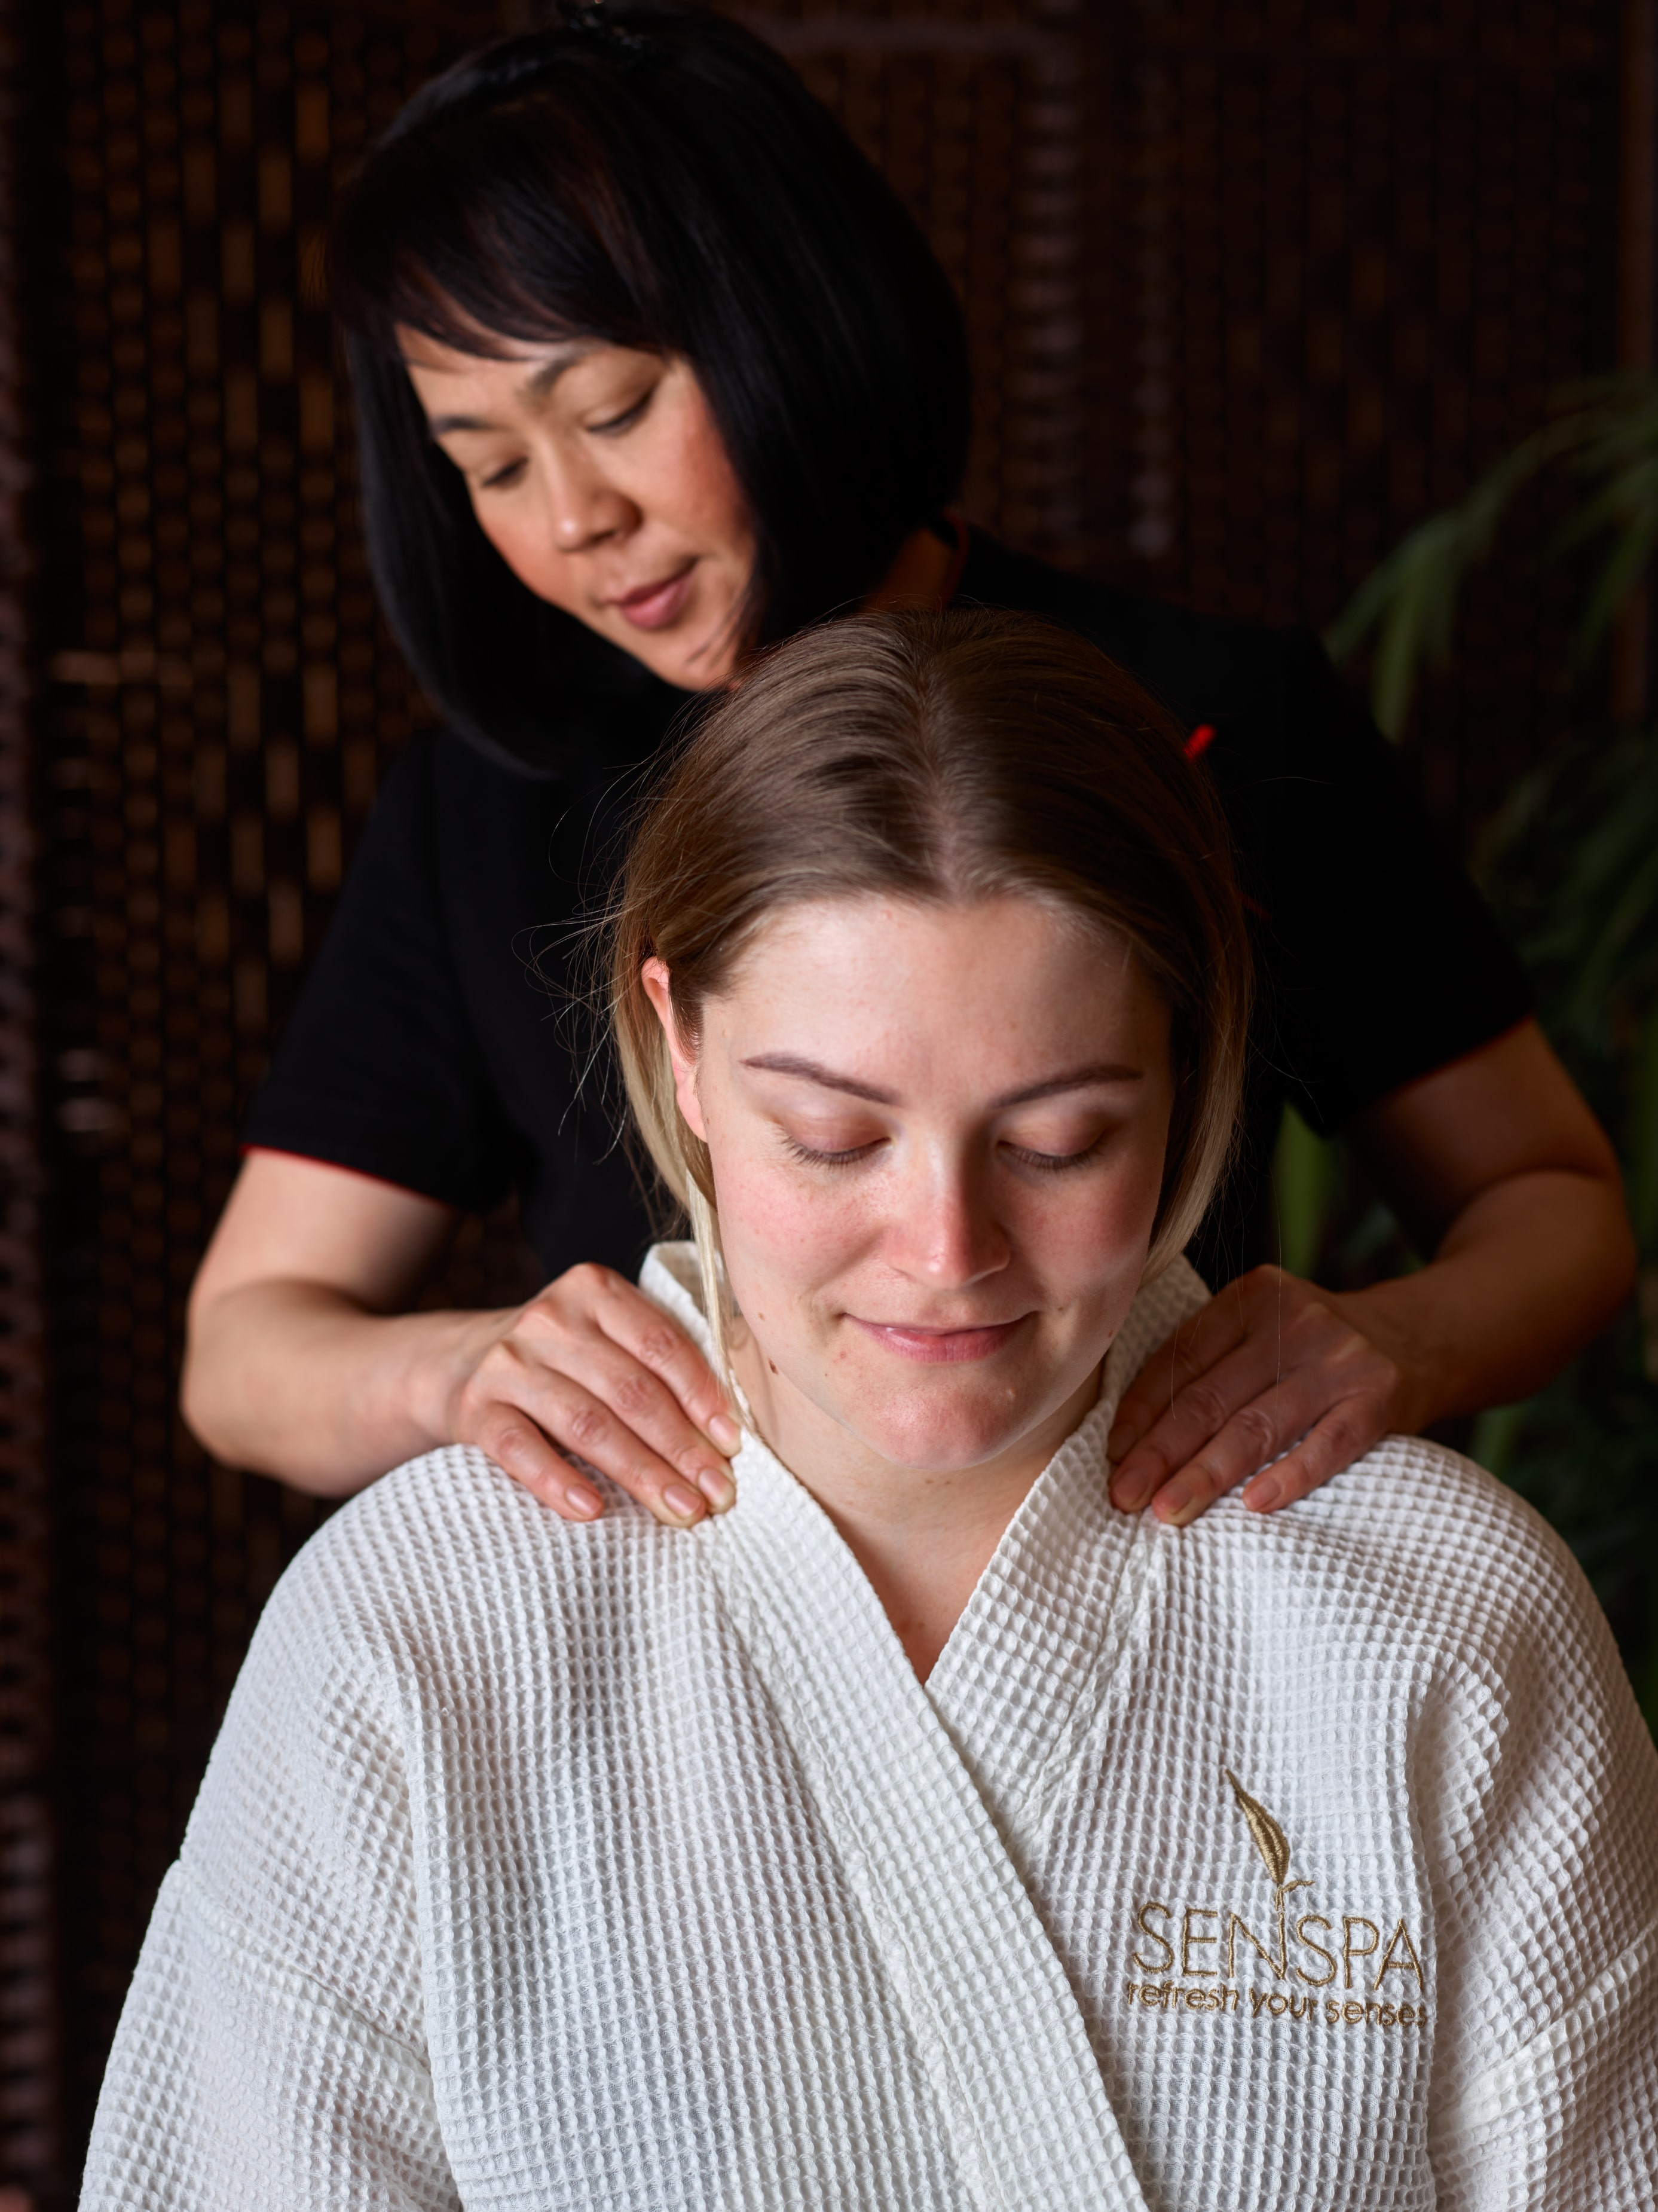 Tension Reliever Massage – Mini Massage at SenSpa